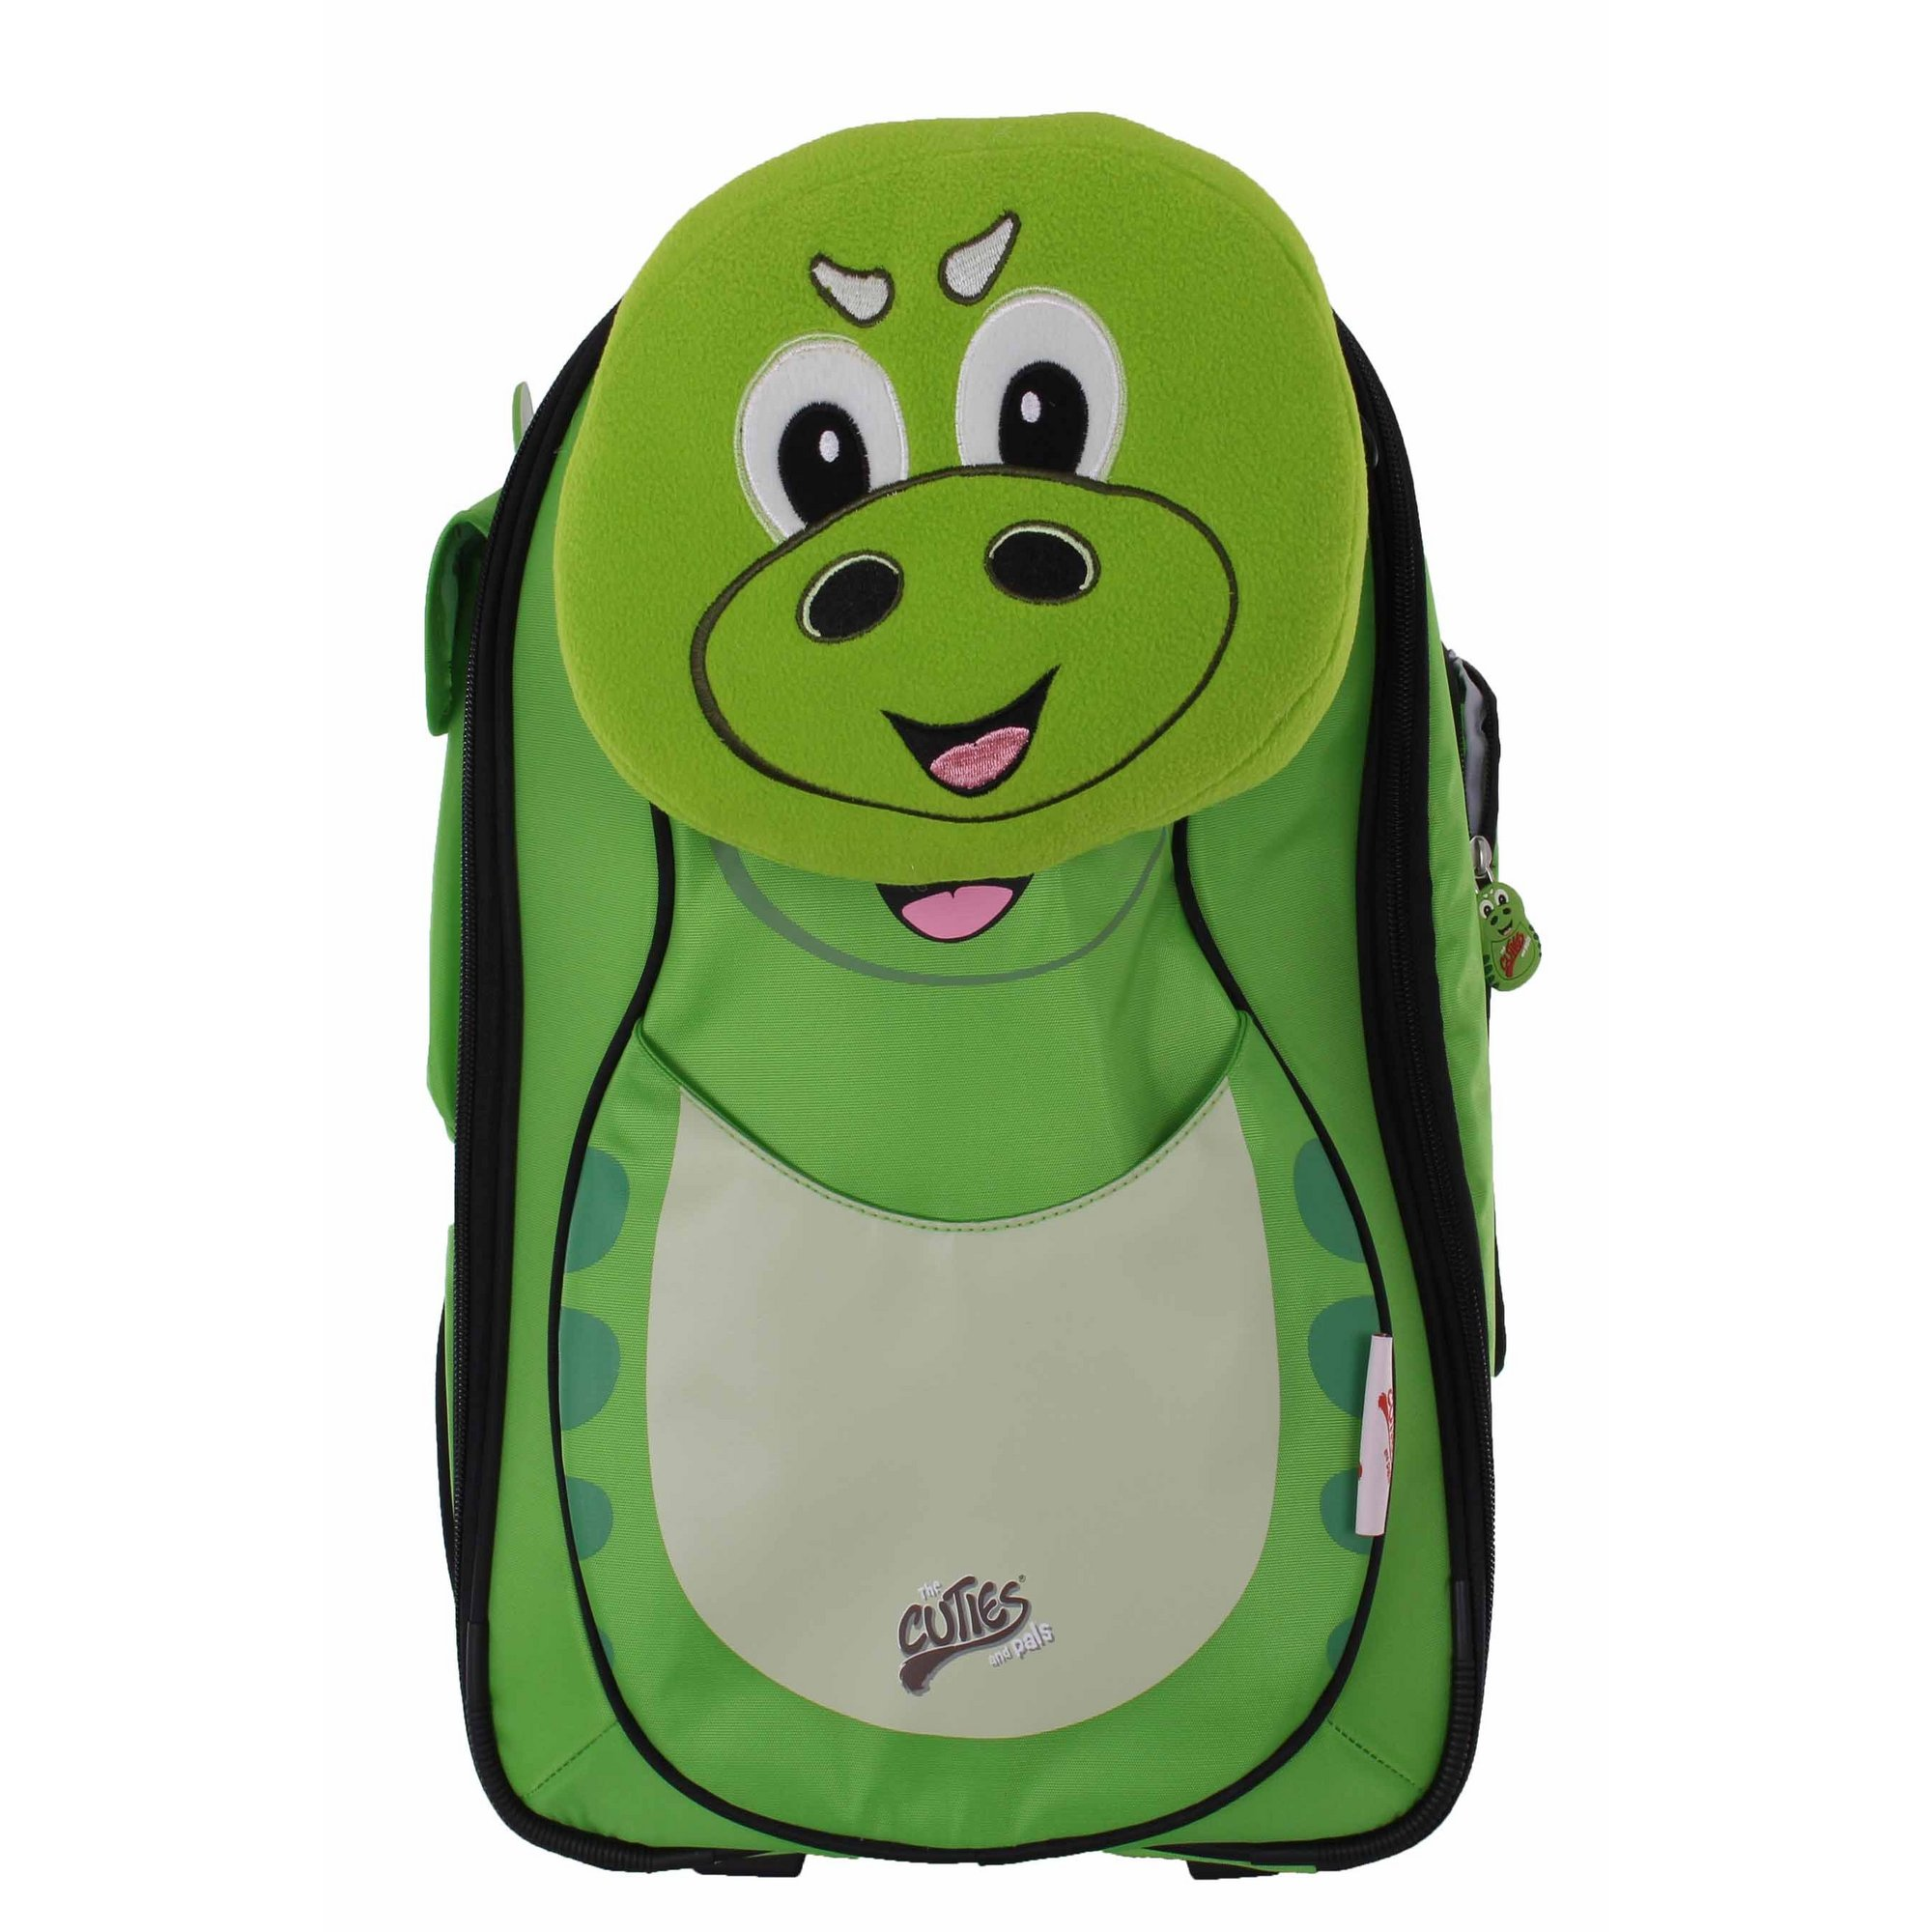 Image of Cuties and Pals Childrens Dinosaur Wheeled Trolley Case